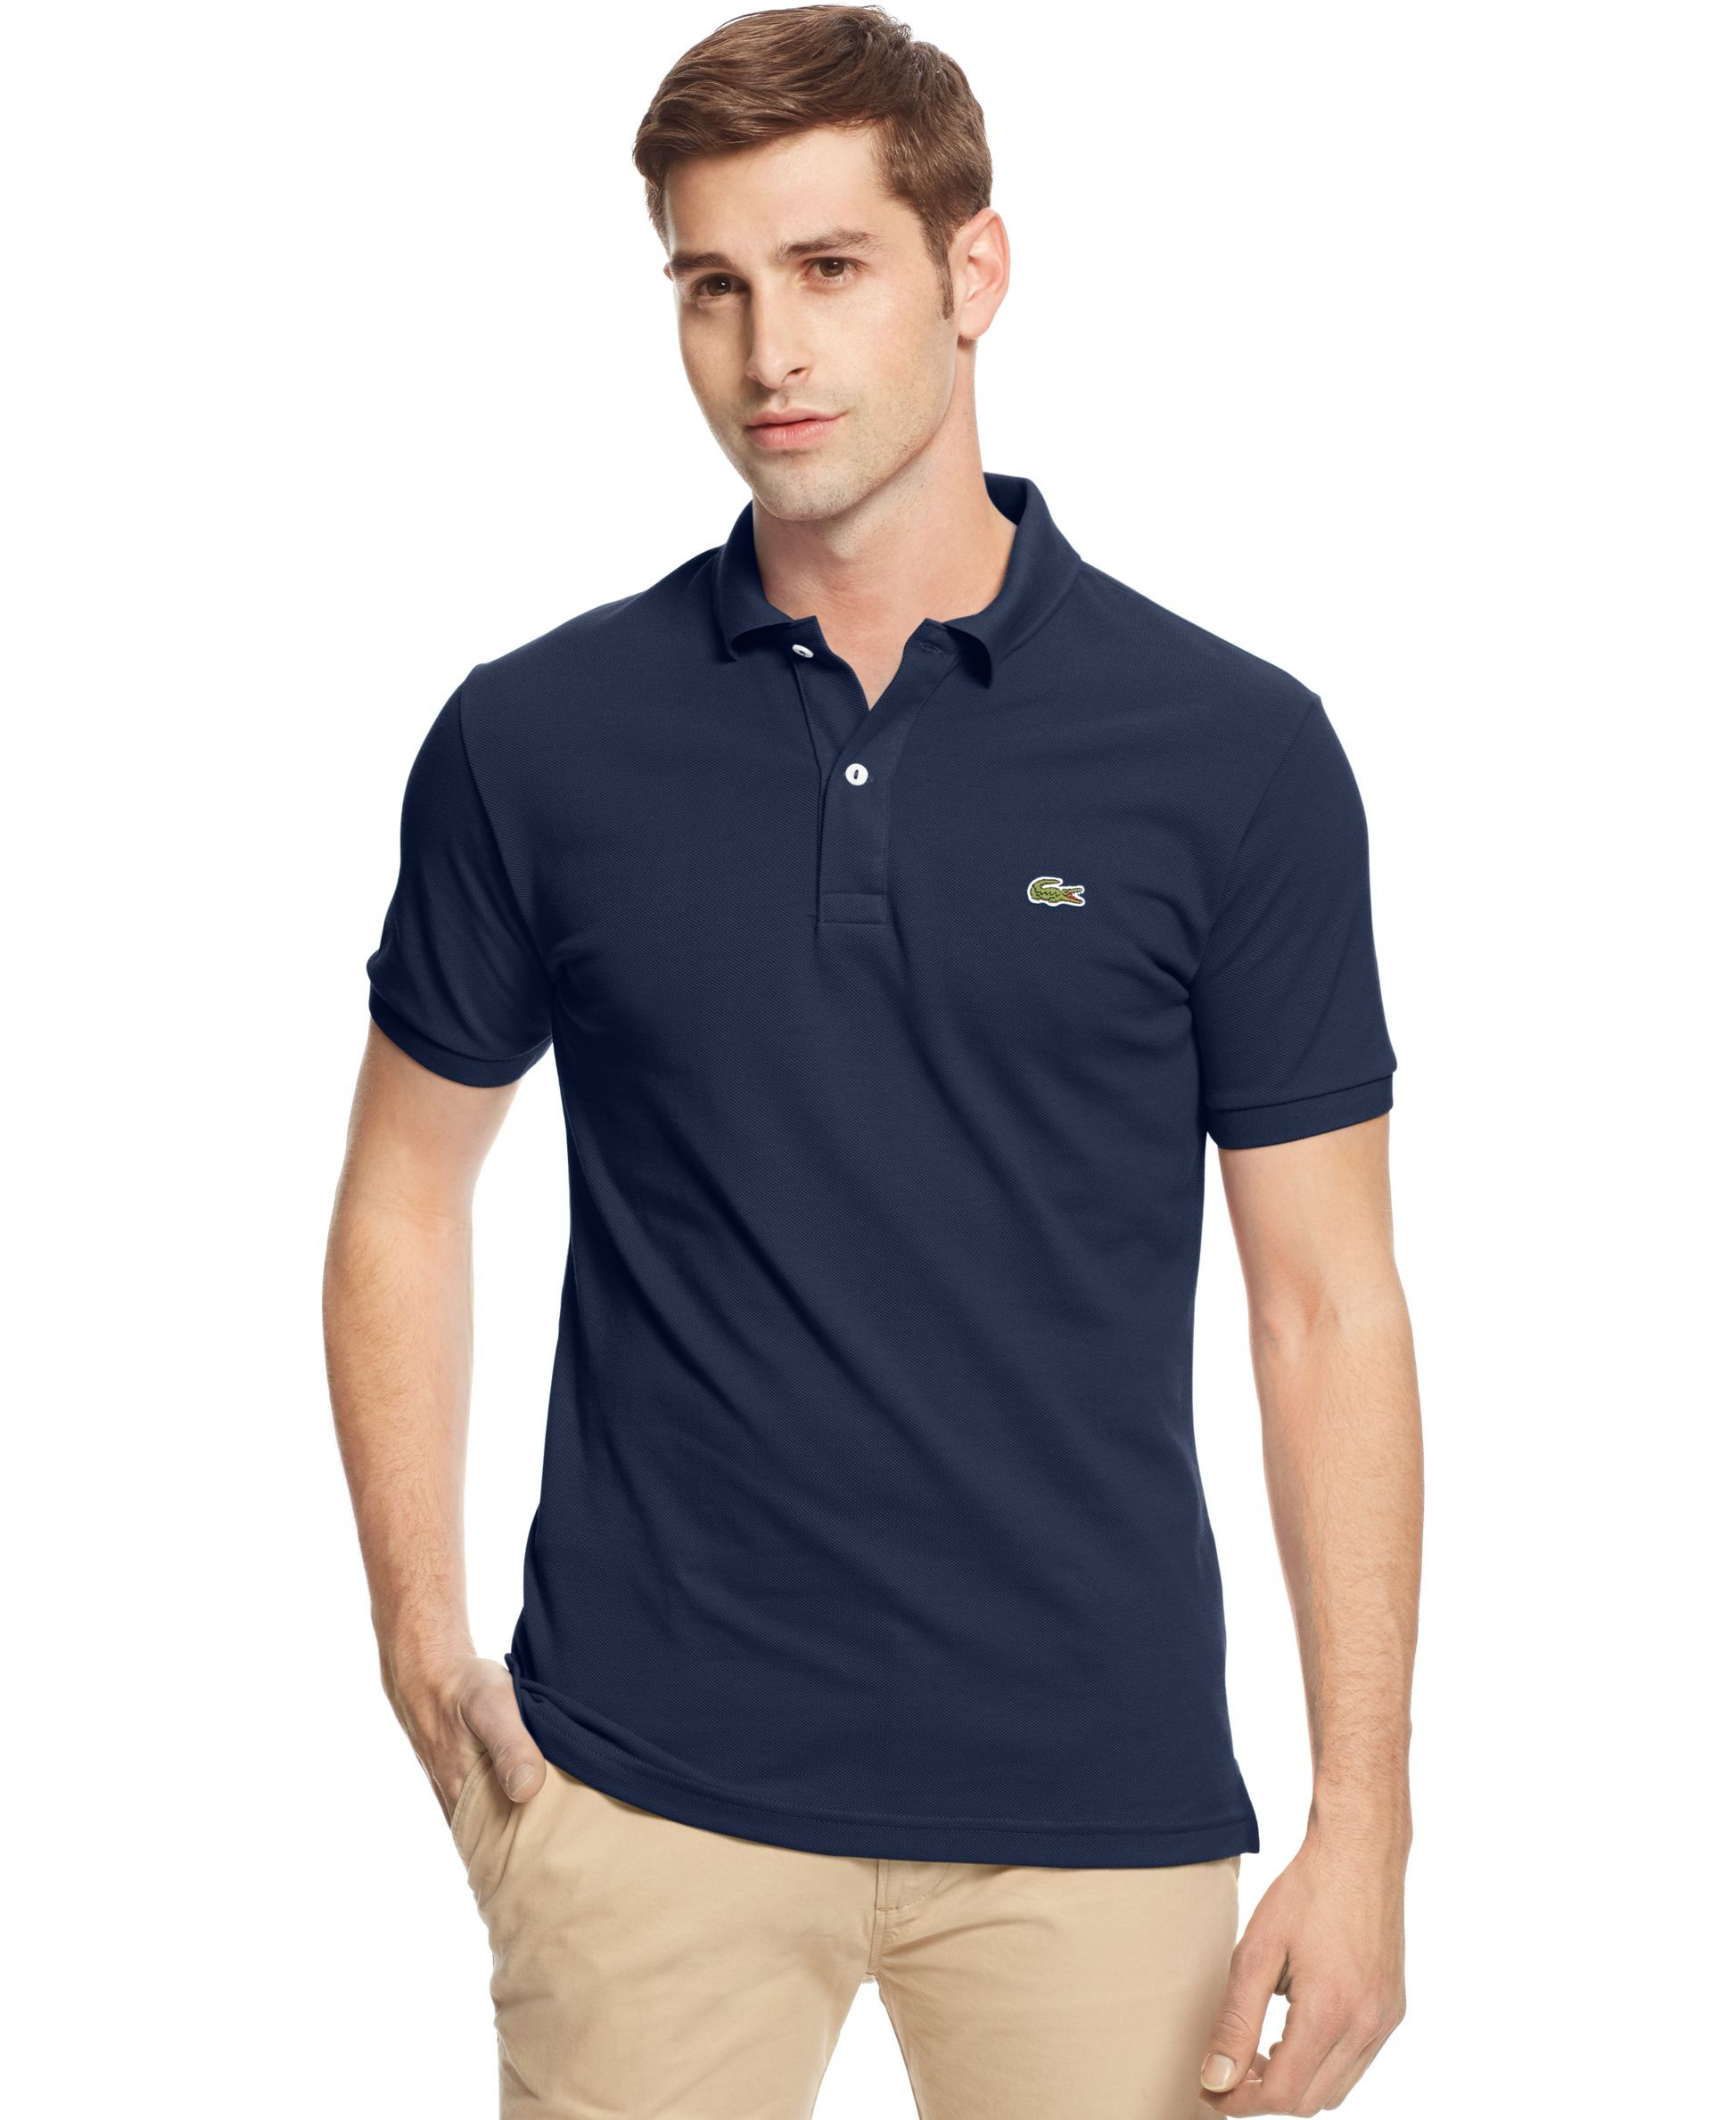 a6b24cdfd632 Men s Slim-Fit Polo in 2019